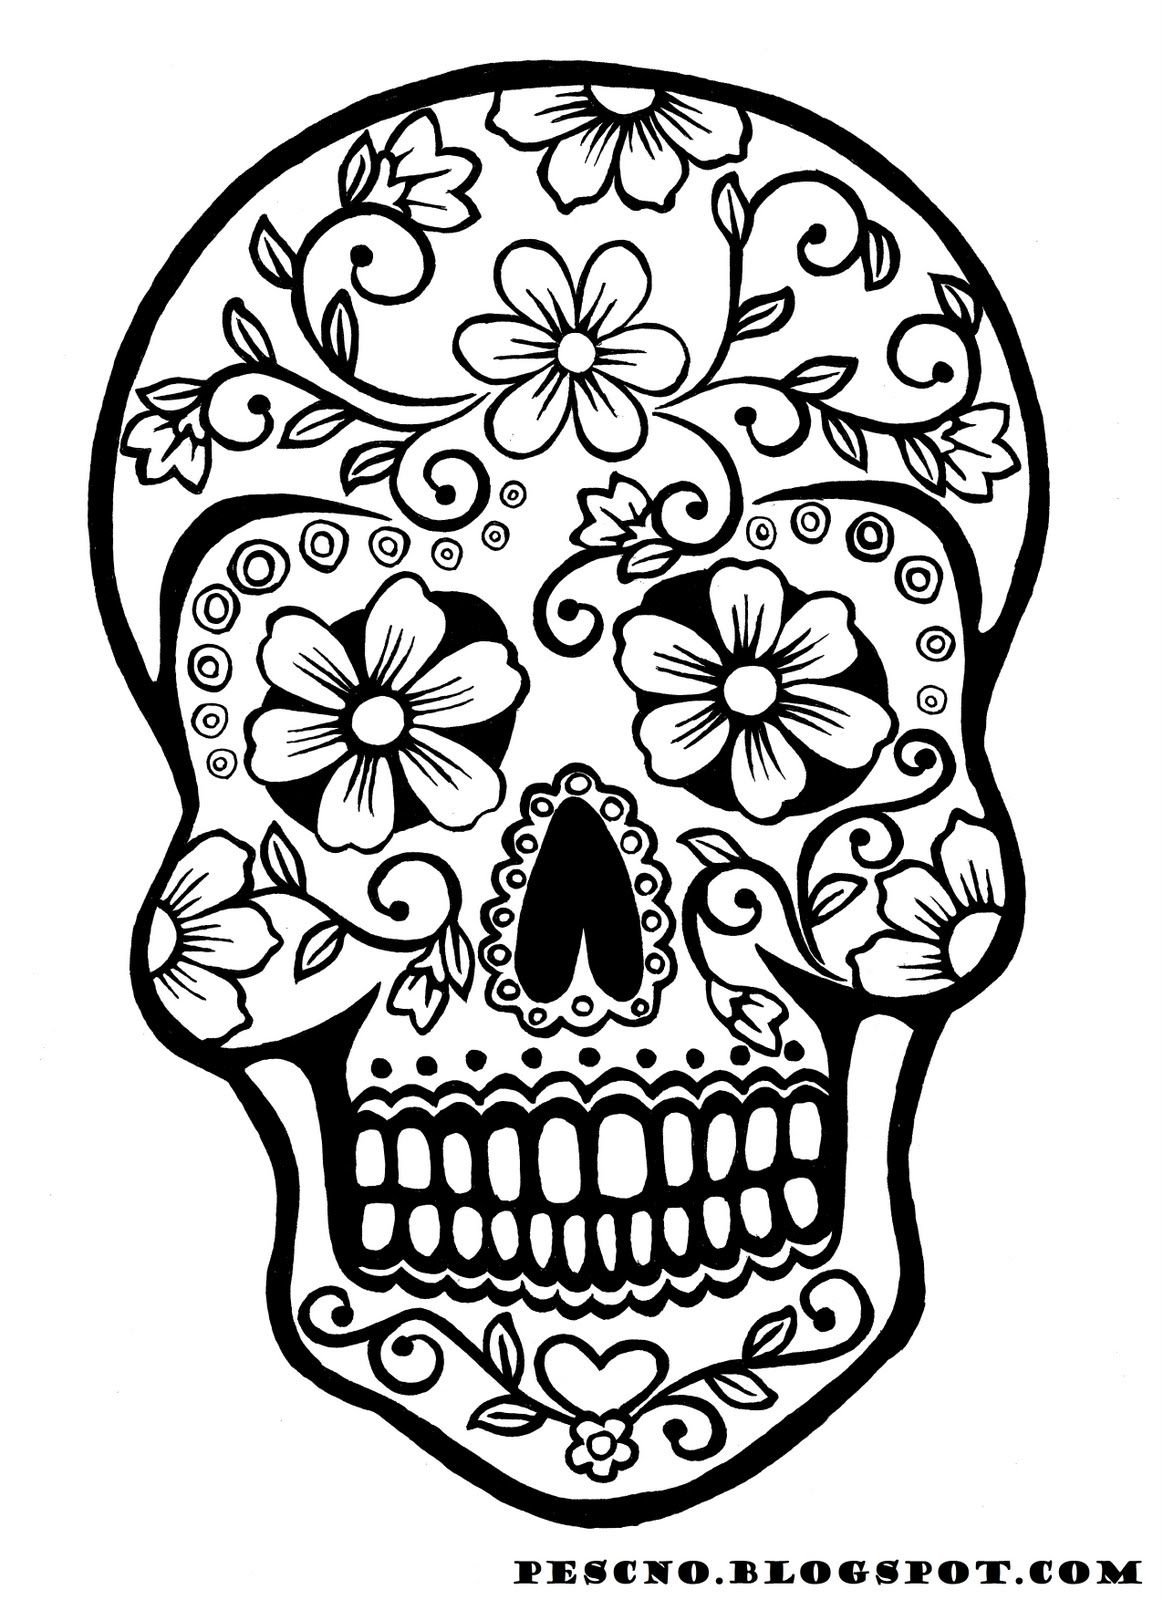 9 fun free printable Halloween coloring pages Sugar skulls